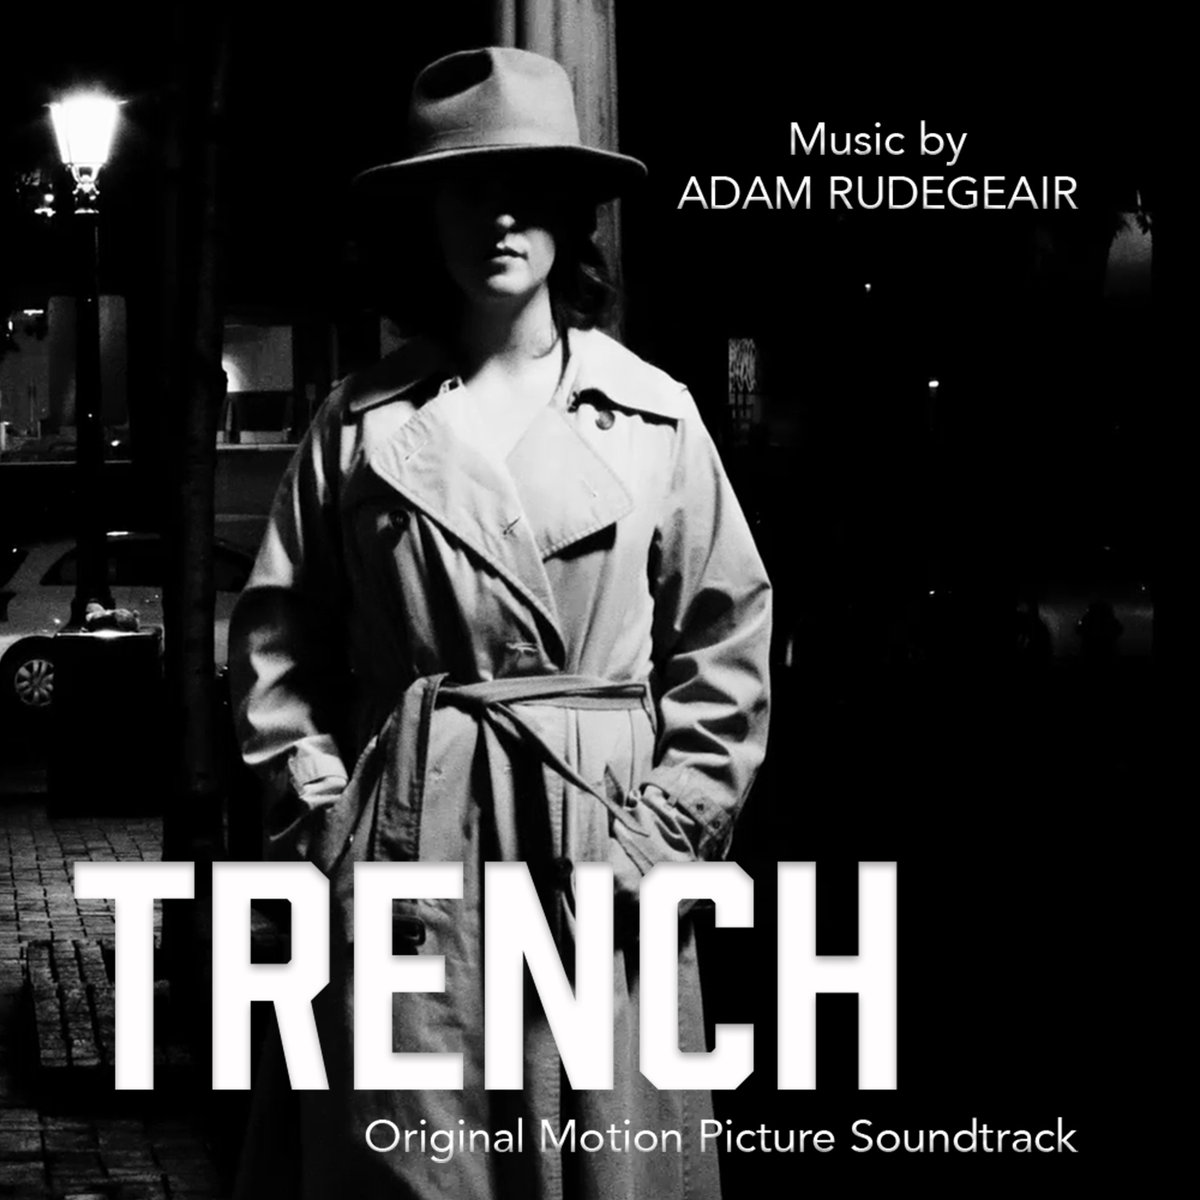 """Adam Rudegeair's Original Sound Track to the film """"Trench"""". Produced by Adam Rudegeair and Myles Mumford, mixed and engineered by Myles Mumford at Rolling Stock Recording Rooms"""